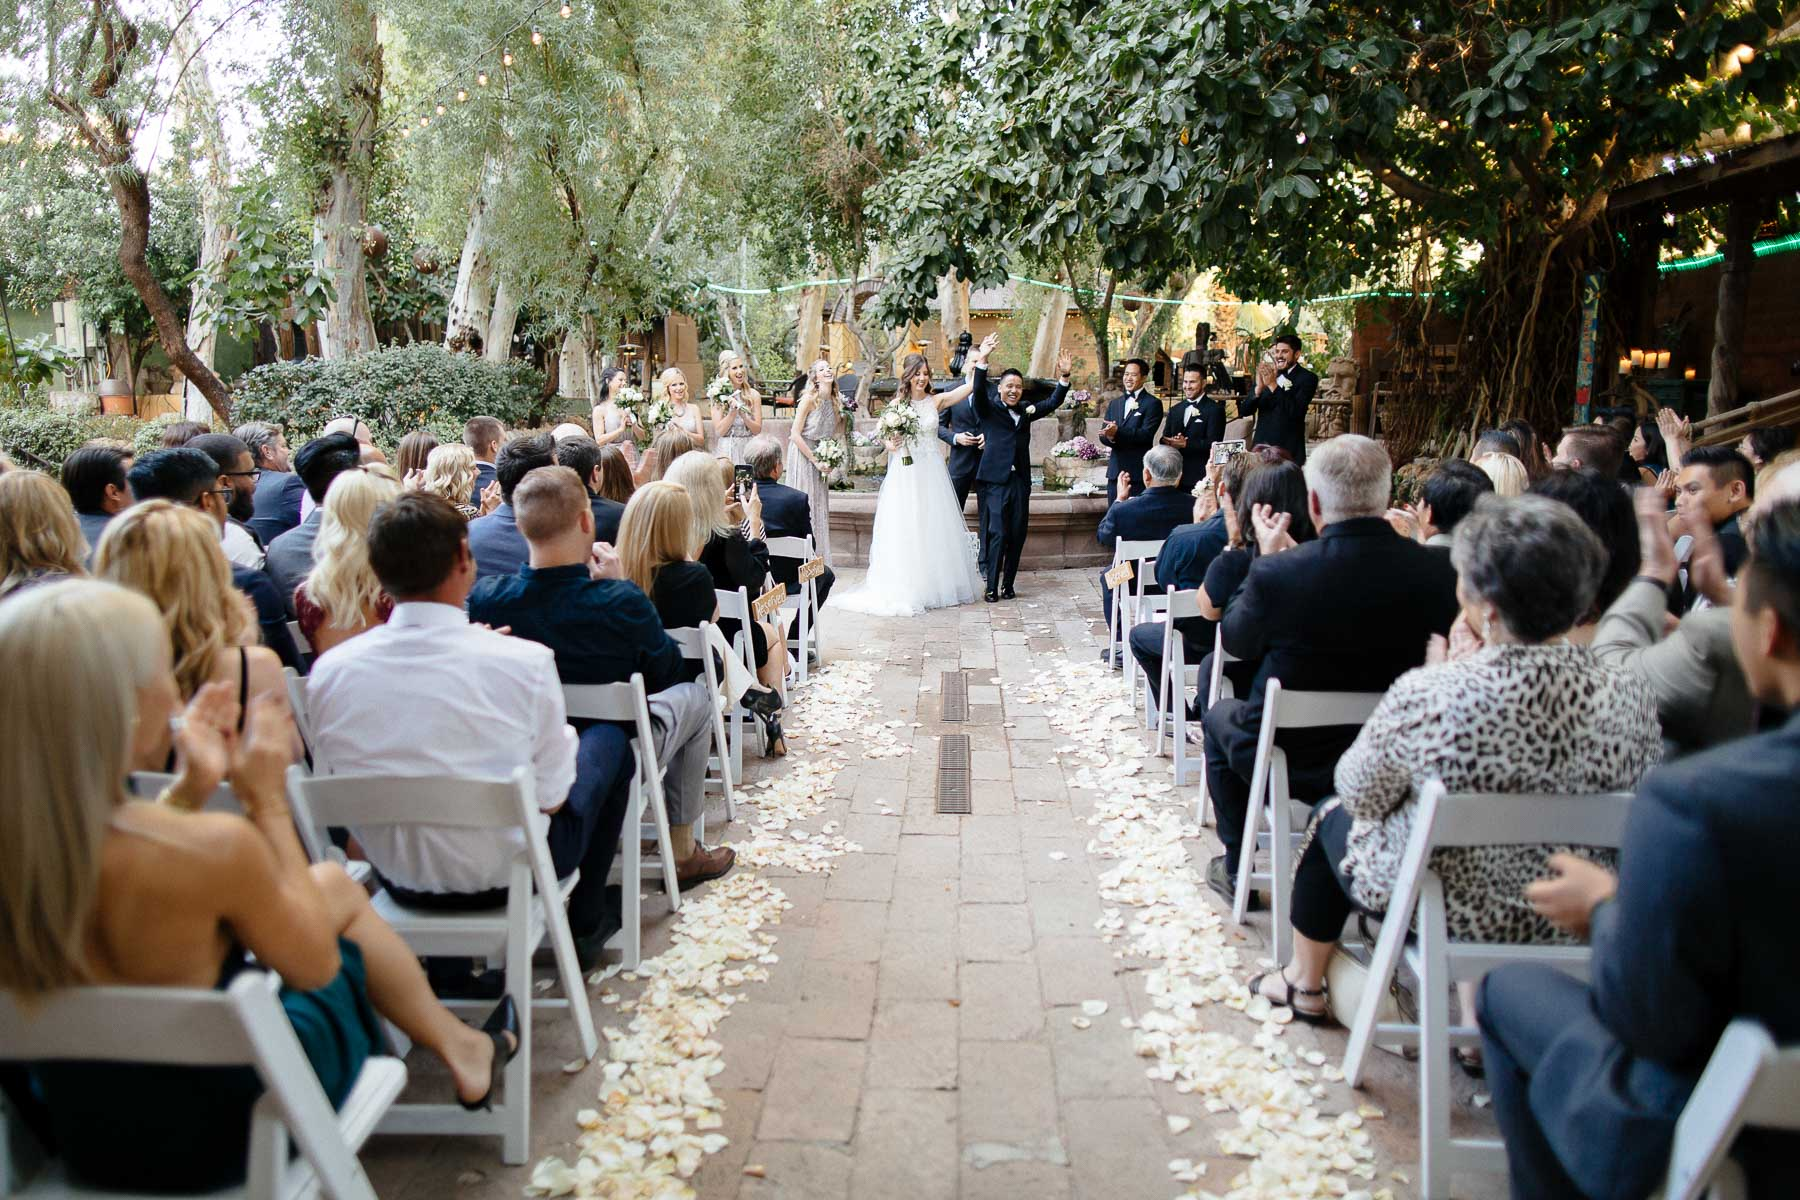 161112-Luxium-Weddings-Arizona-Jon-Madison-Boojum-Tree-First-Look-032a.jpg